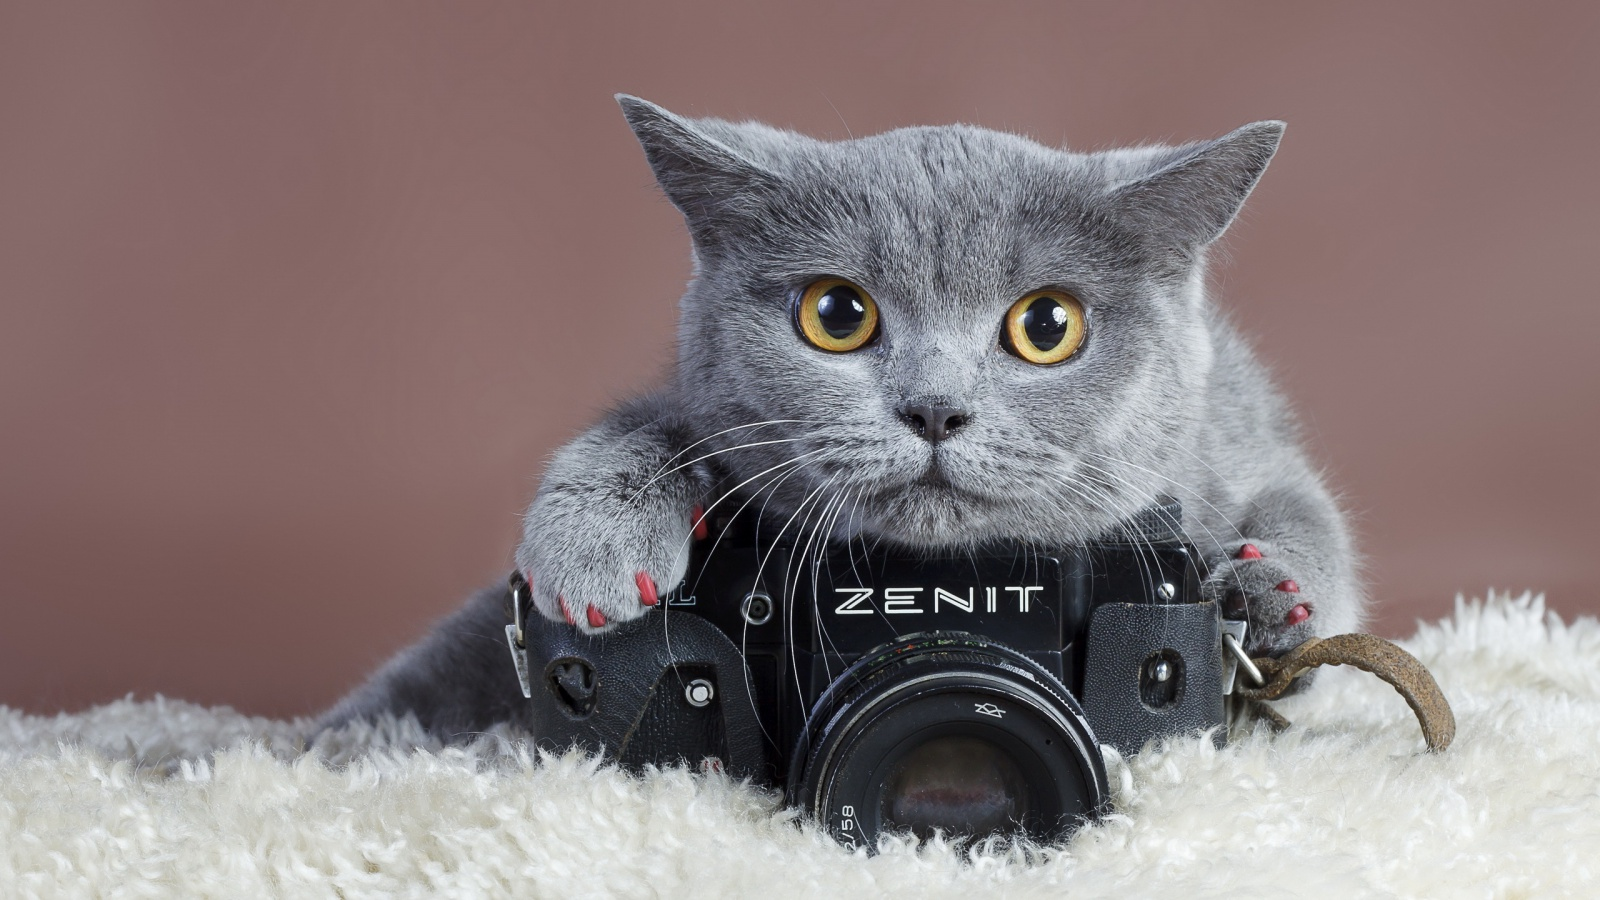 Description download Cute gray cat with camera wallpaper desktop 1600x900